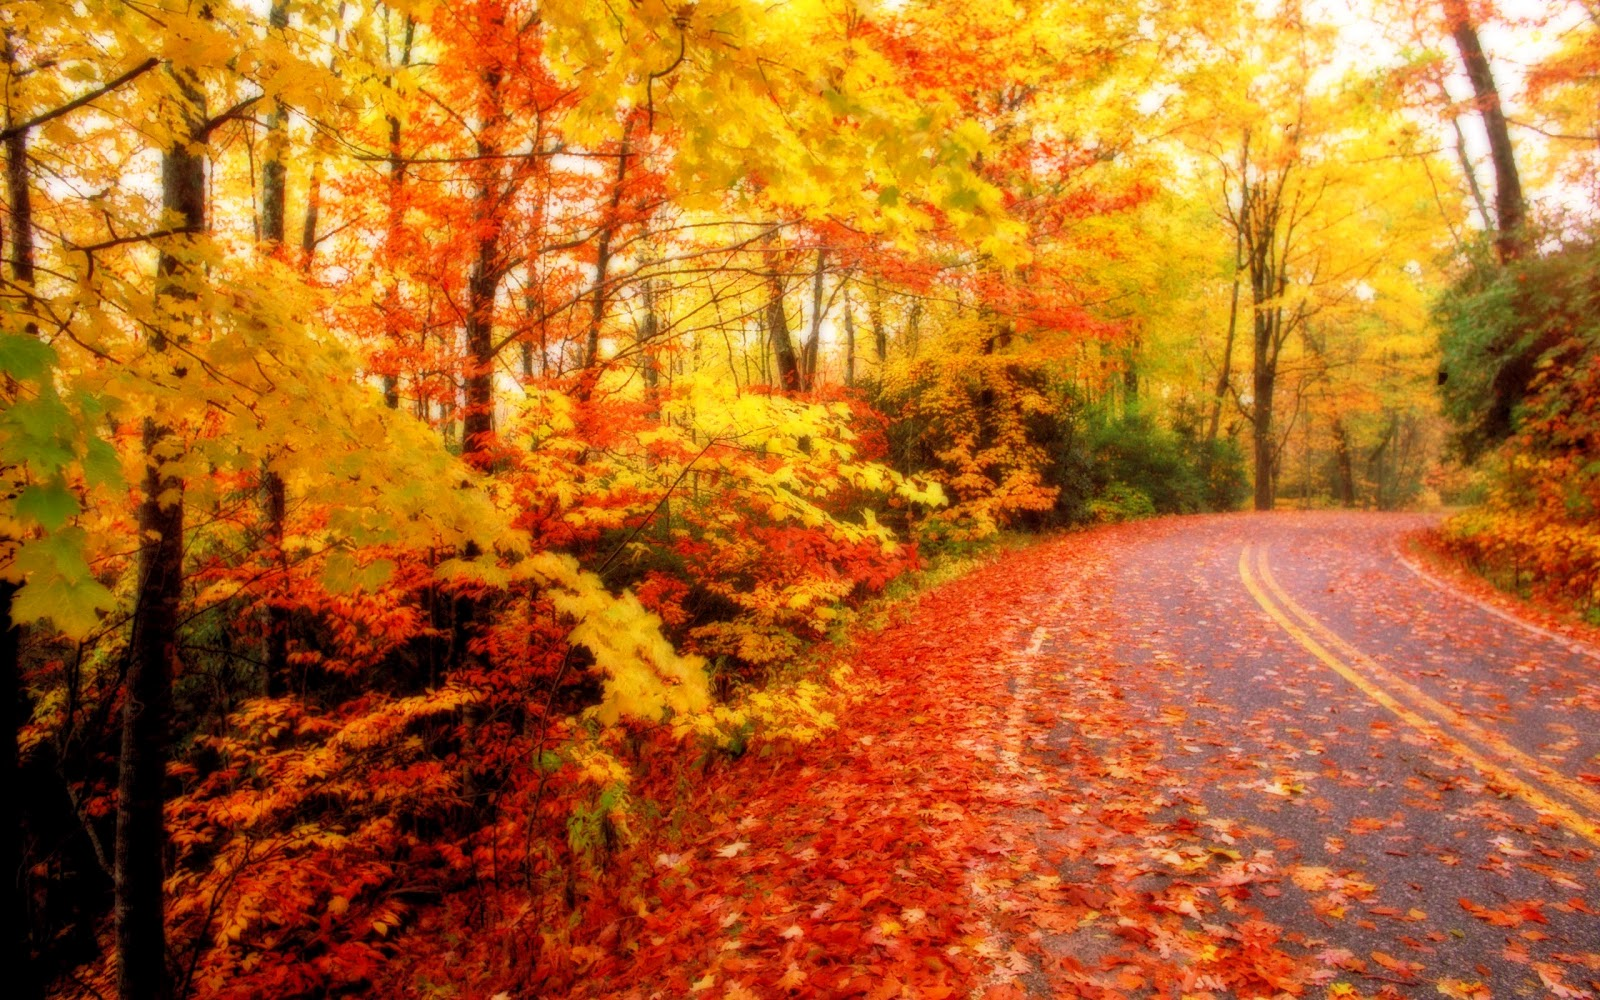 Collection of Autumn Computer Wallpaper on HDWallpapers